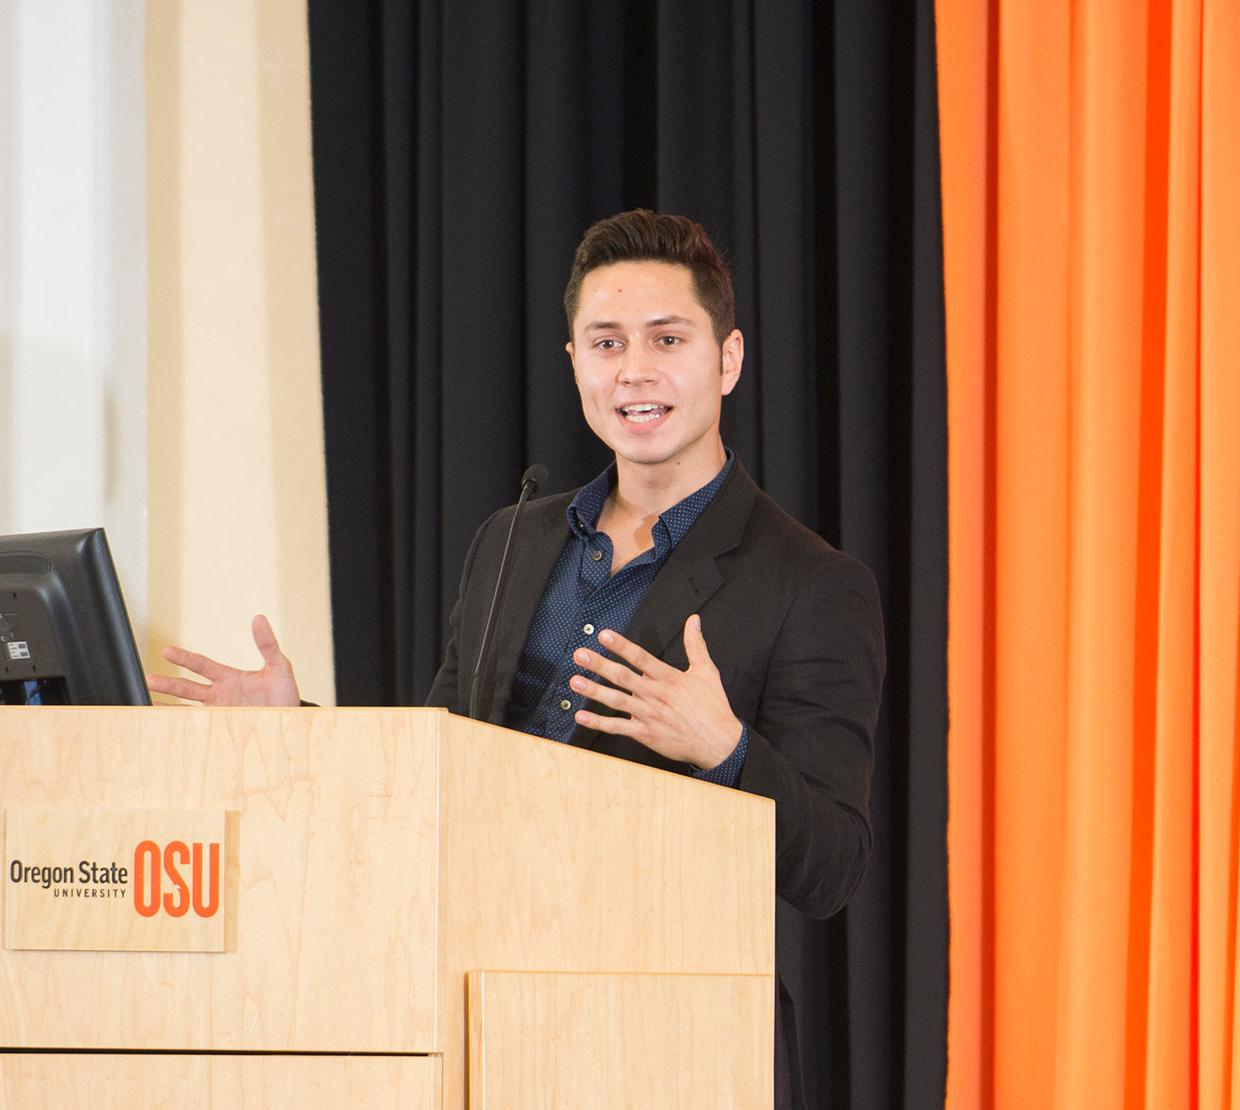 Jackson Dougan giving lecture on OSU's campus